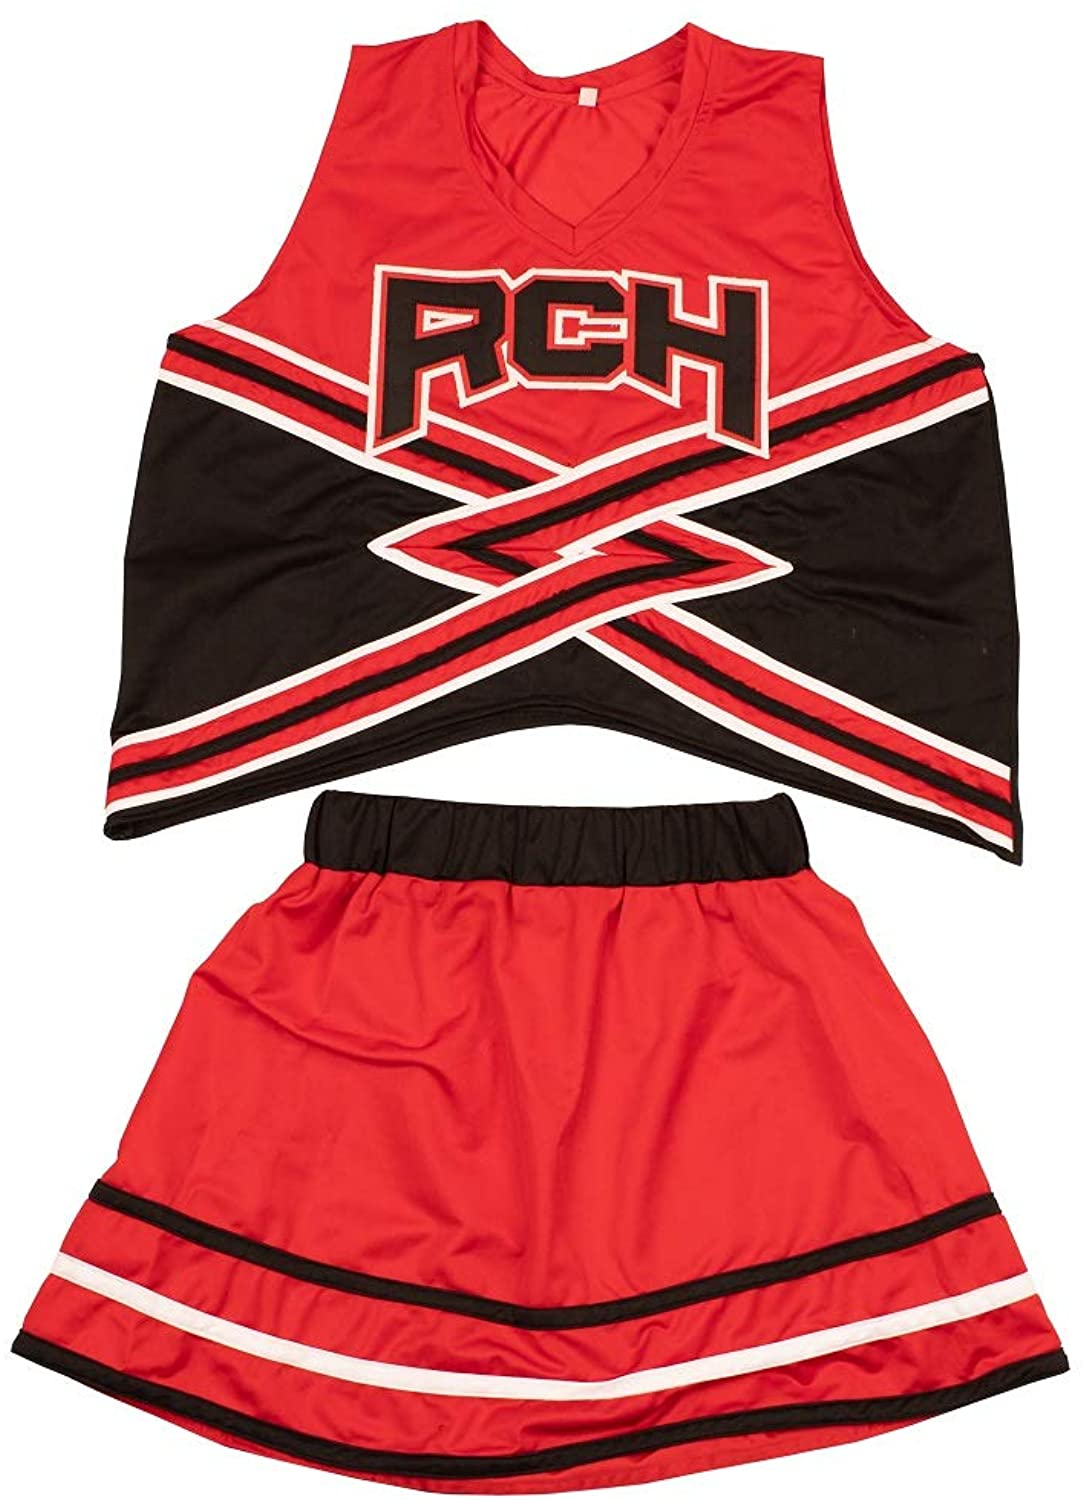 Bring It Torrance Shipman (K. Dunst) Rancho Carne High School Toros Cheerleader Uniform Stitch Sewn Colors